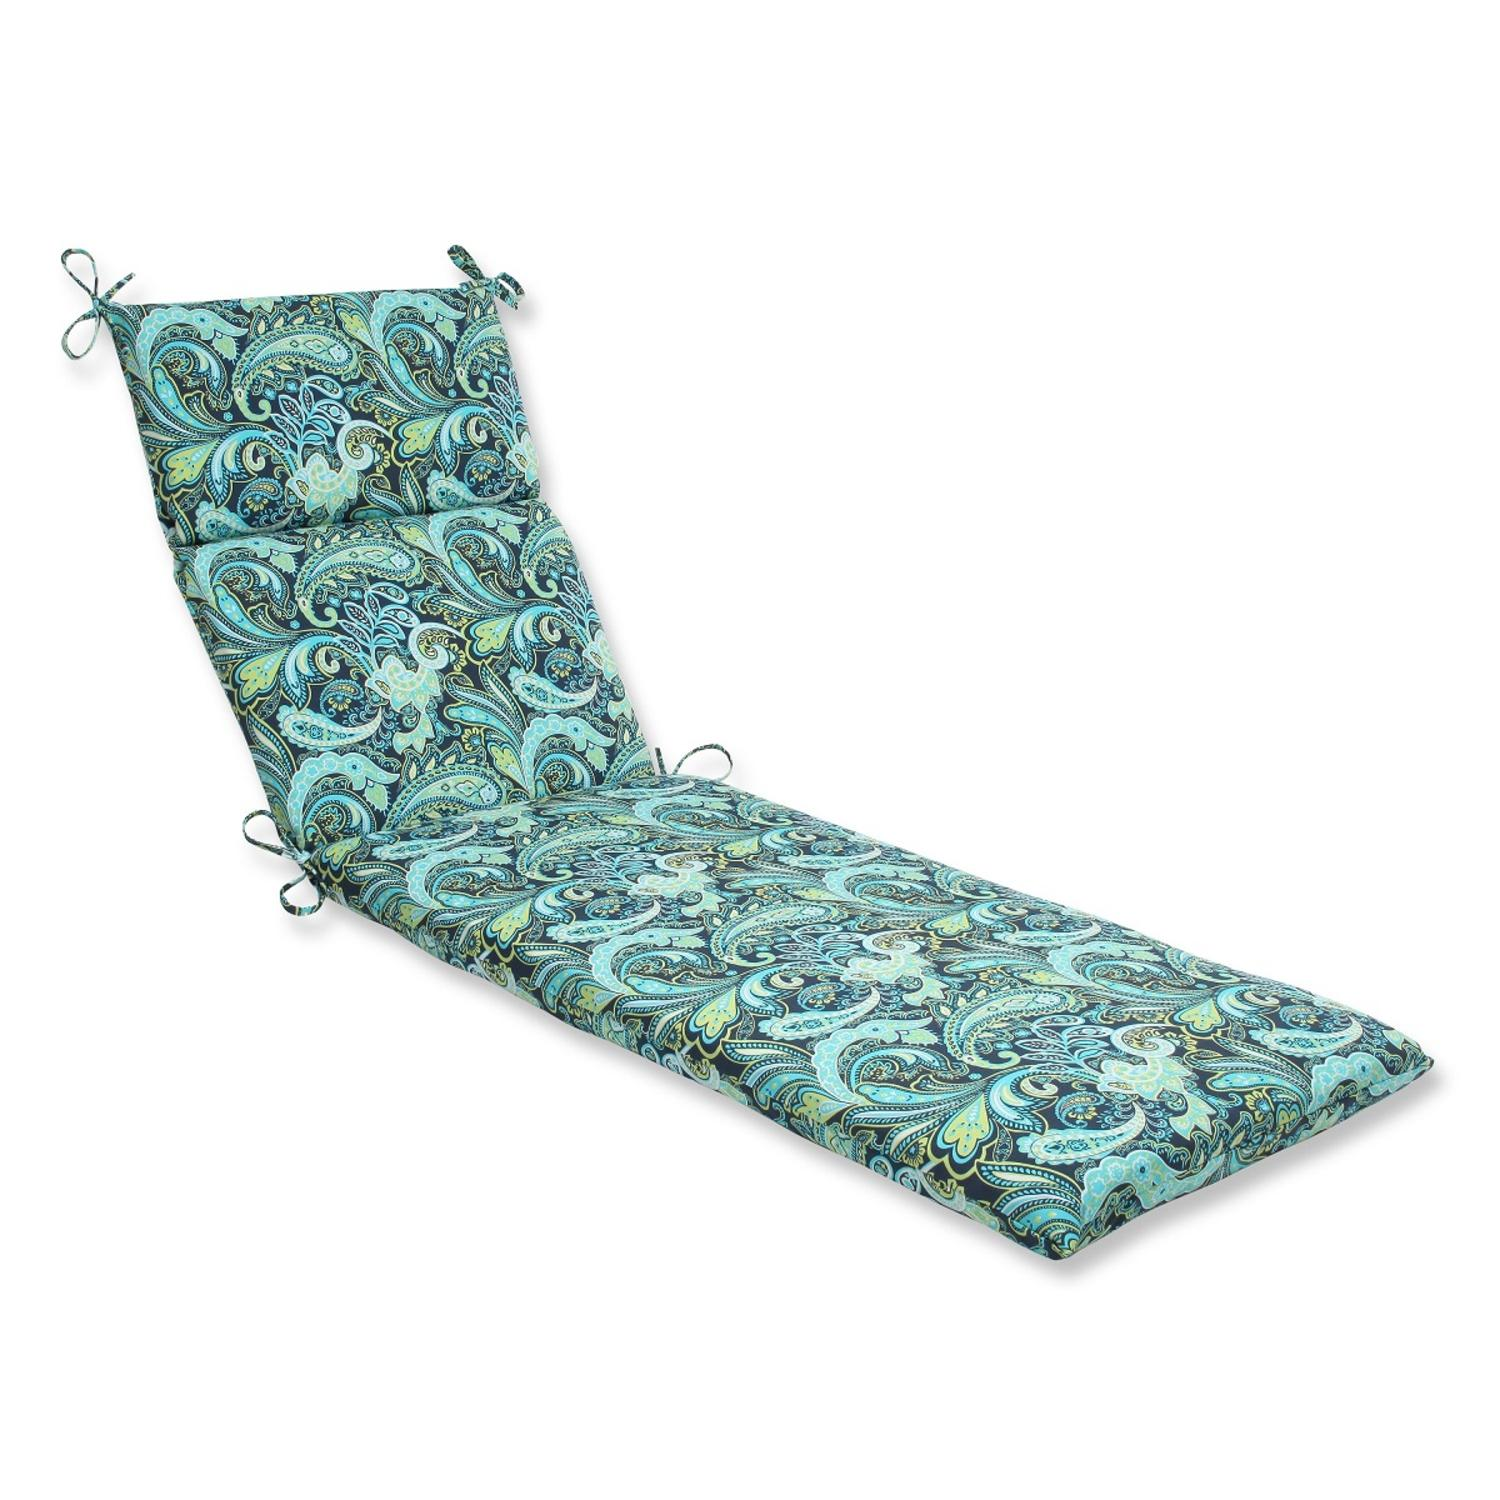 "72.5"" Sogno Paisley Blue, Green and White Outdoor Patio Chaise Lounge Cushion"